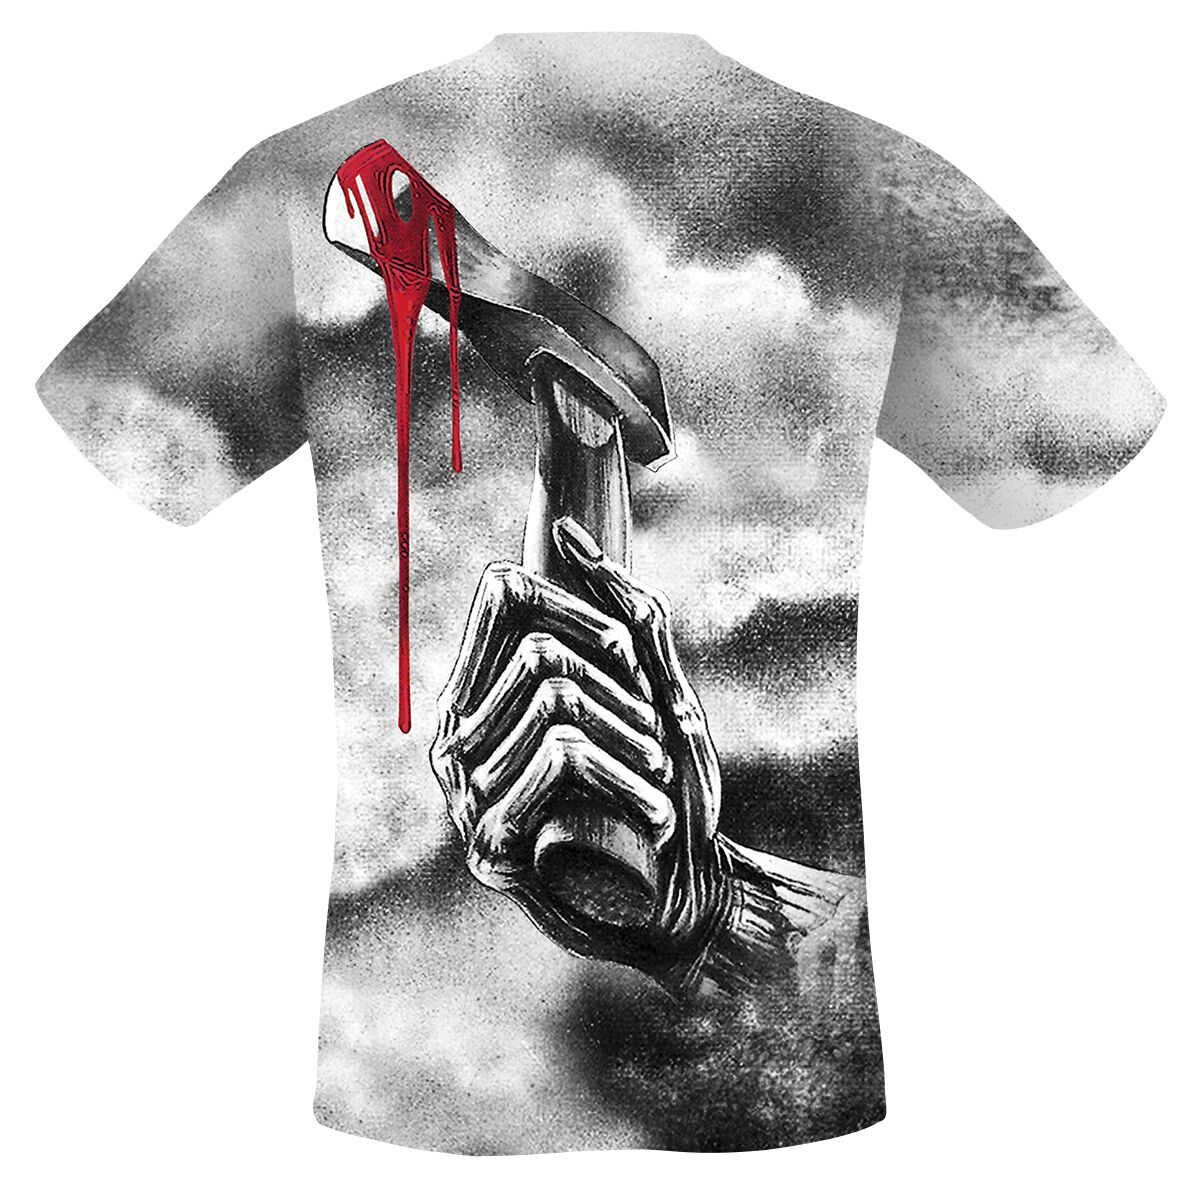 Killers All-over   Iron Maiden T-Shirt   EMP